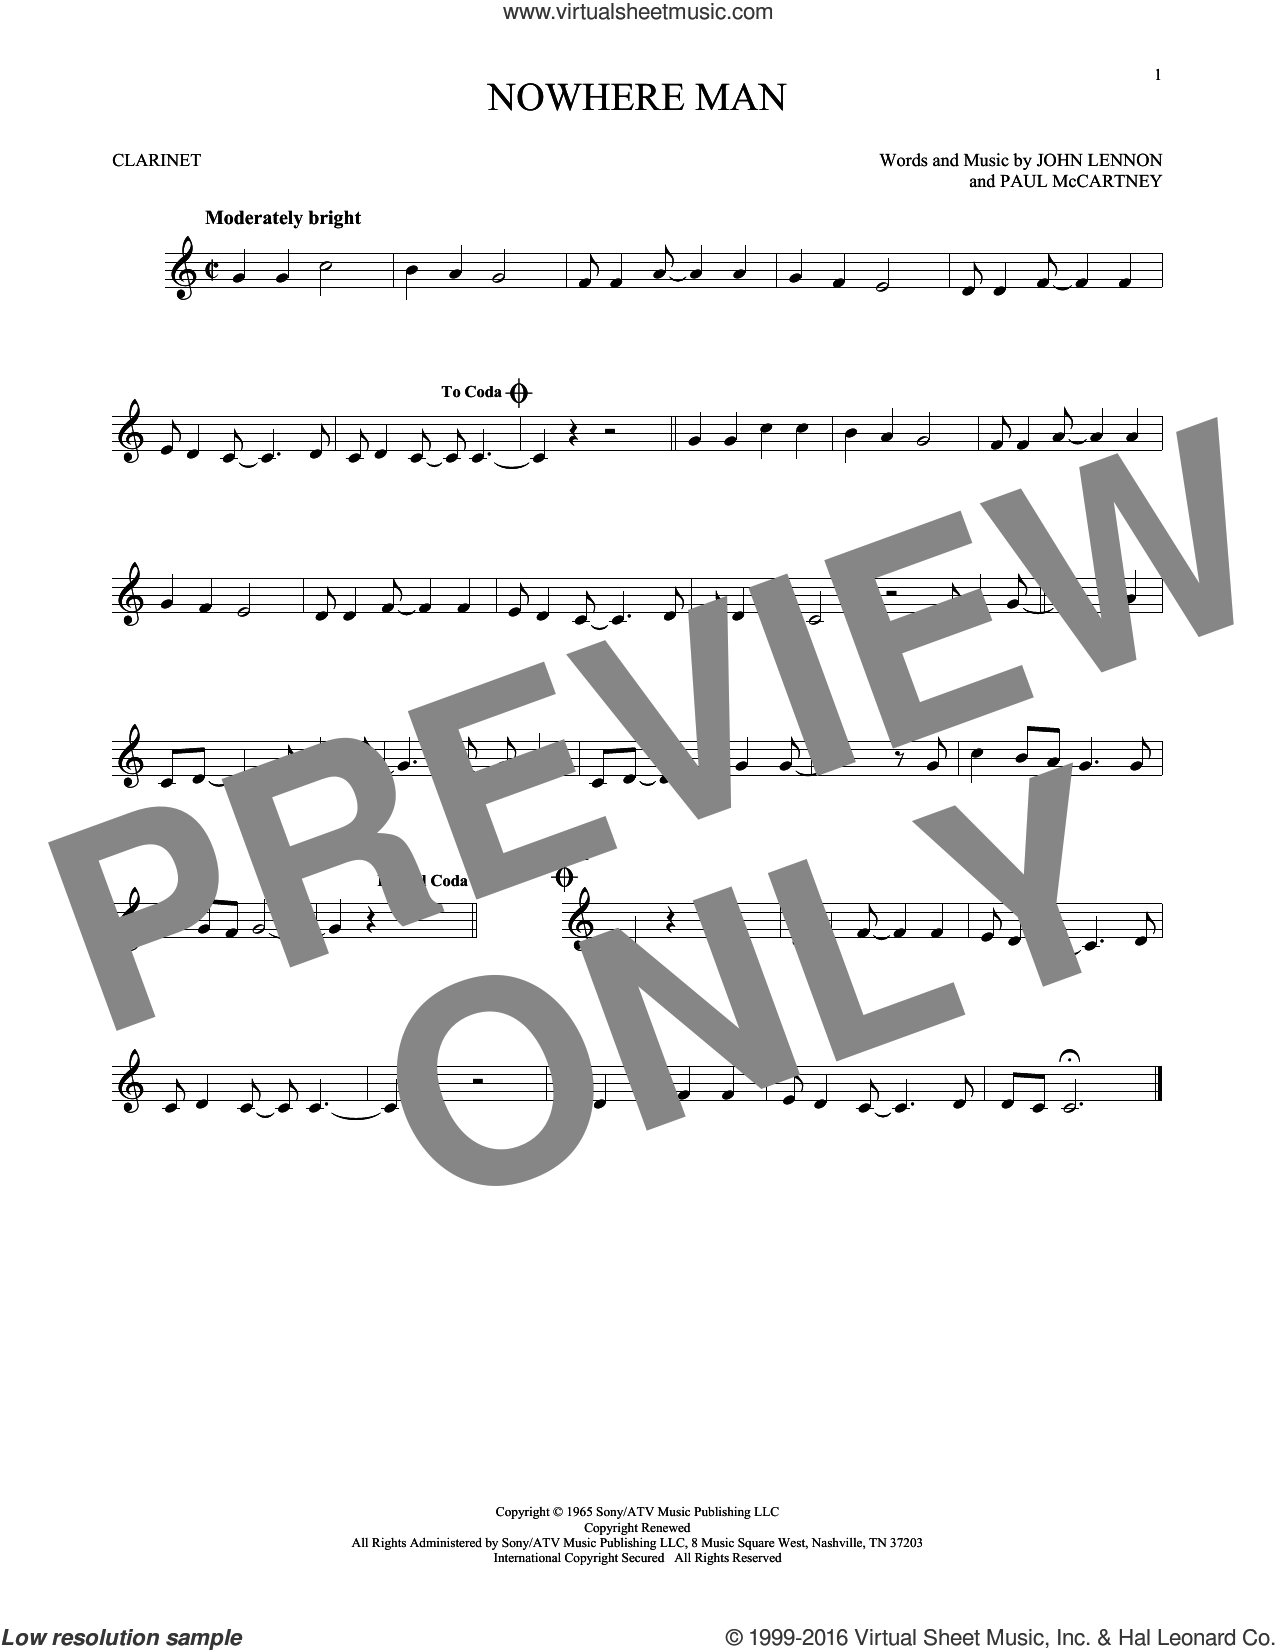 Nowhere Man sheet music for clarinet solo by Paul McCartney, The Beatles and John Lennon. Score Image Preview.